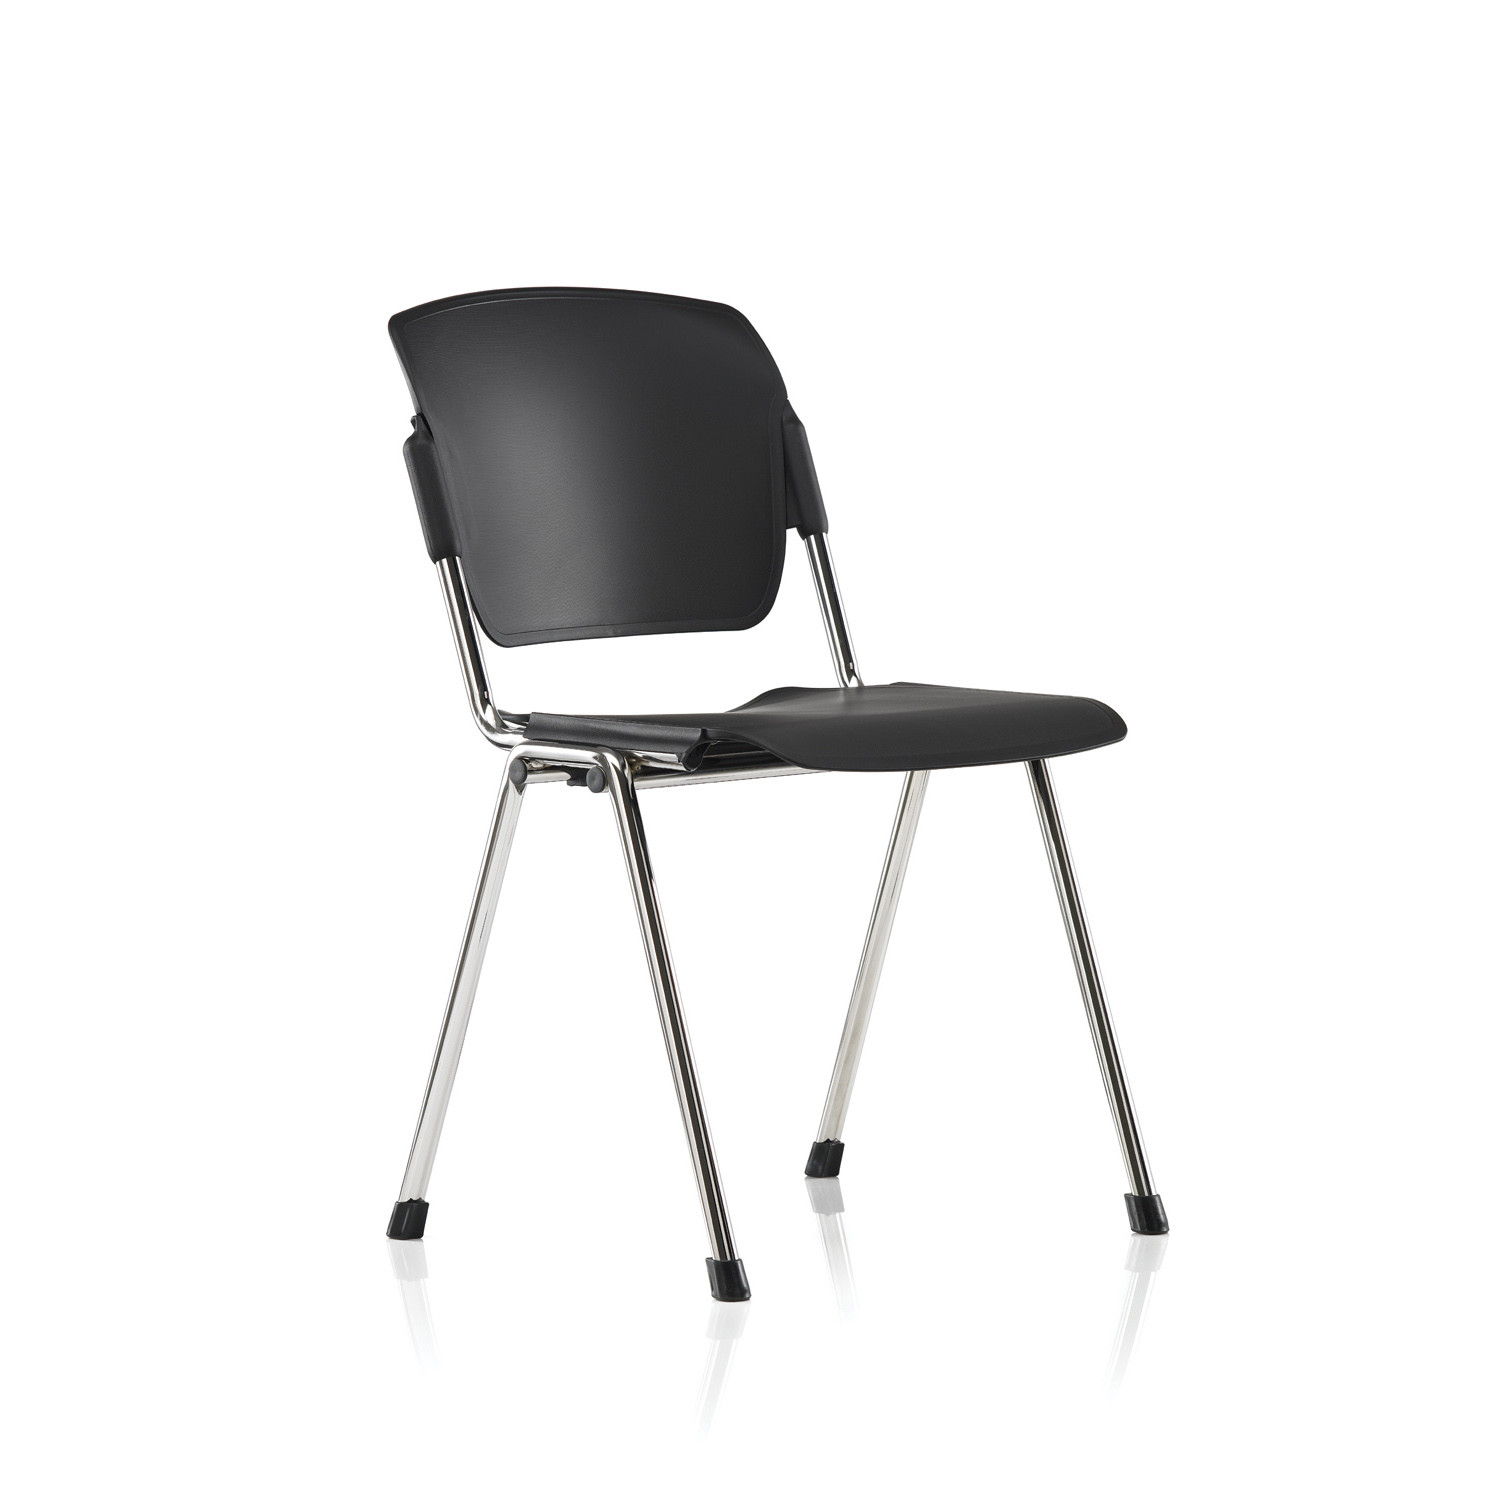 Series 8000 Training Chairs by Pledge